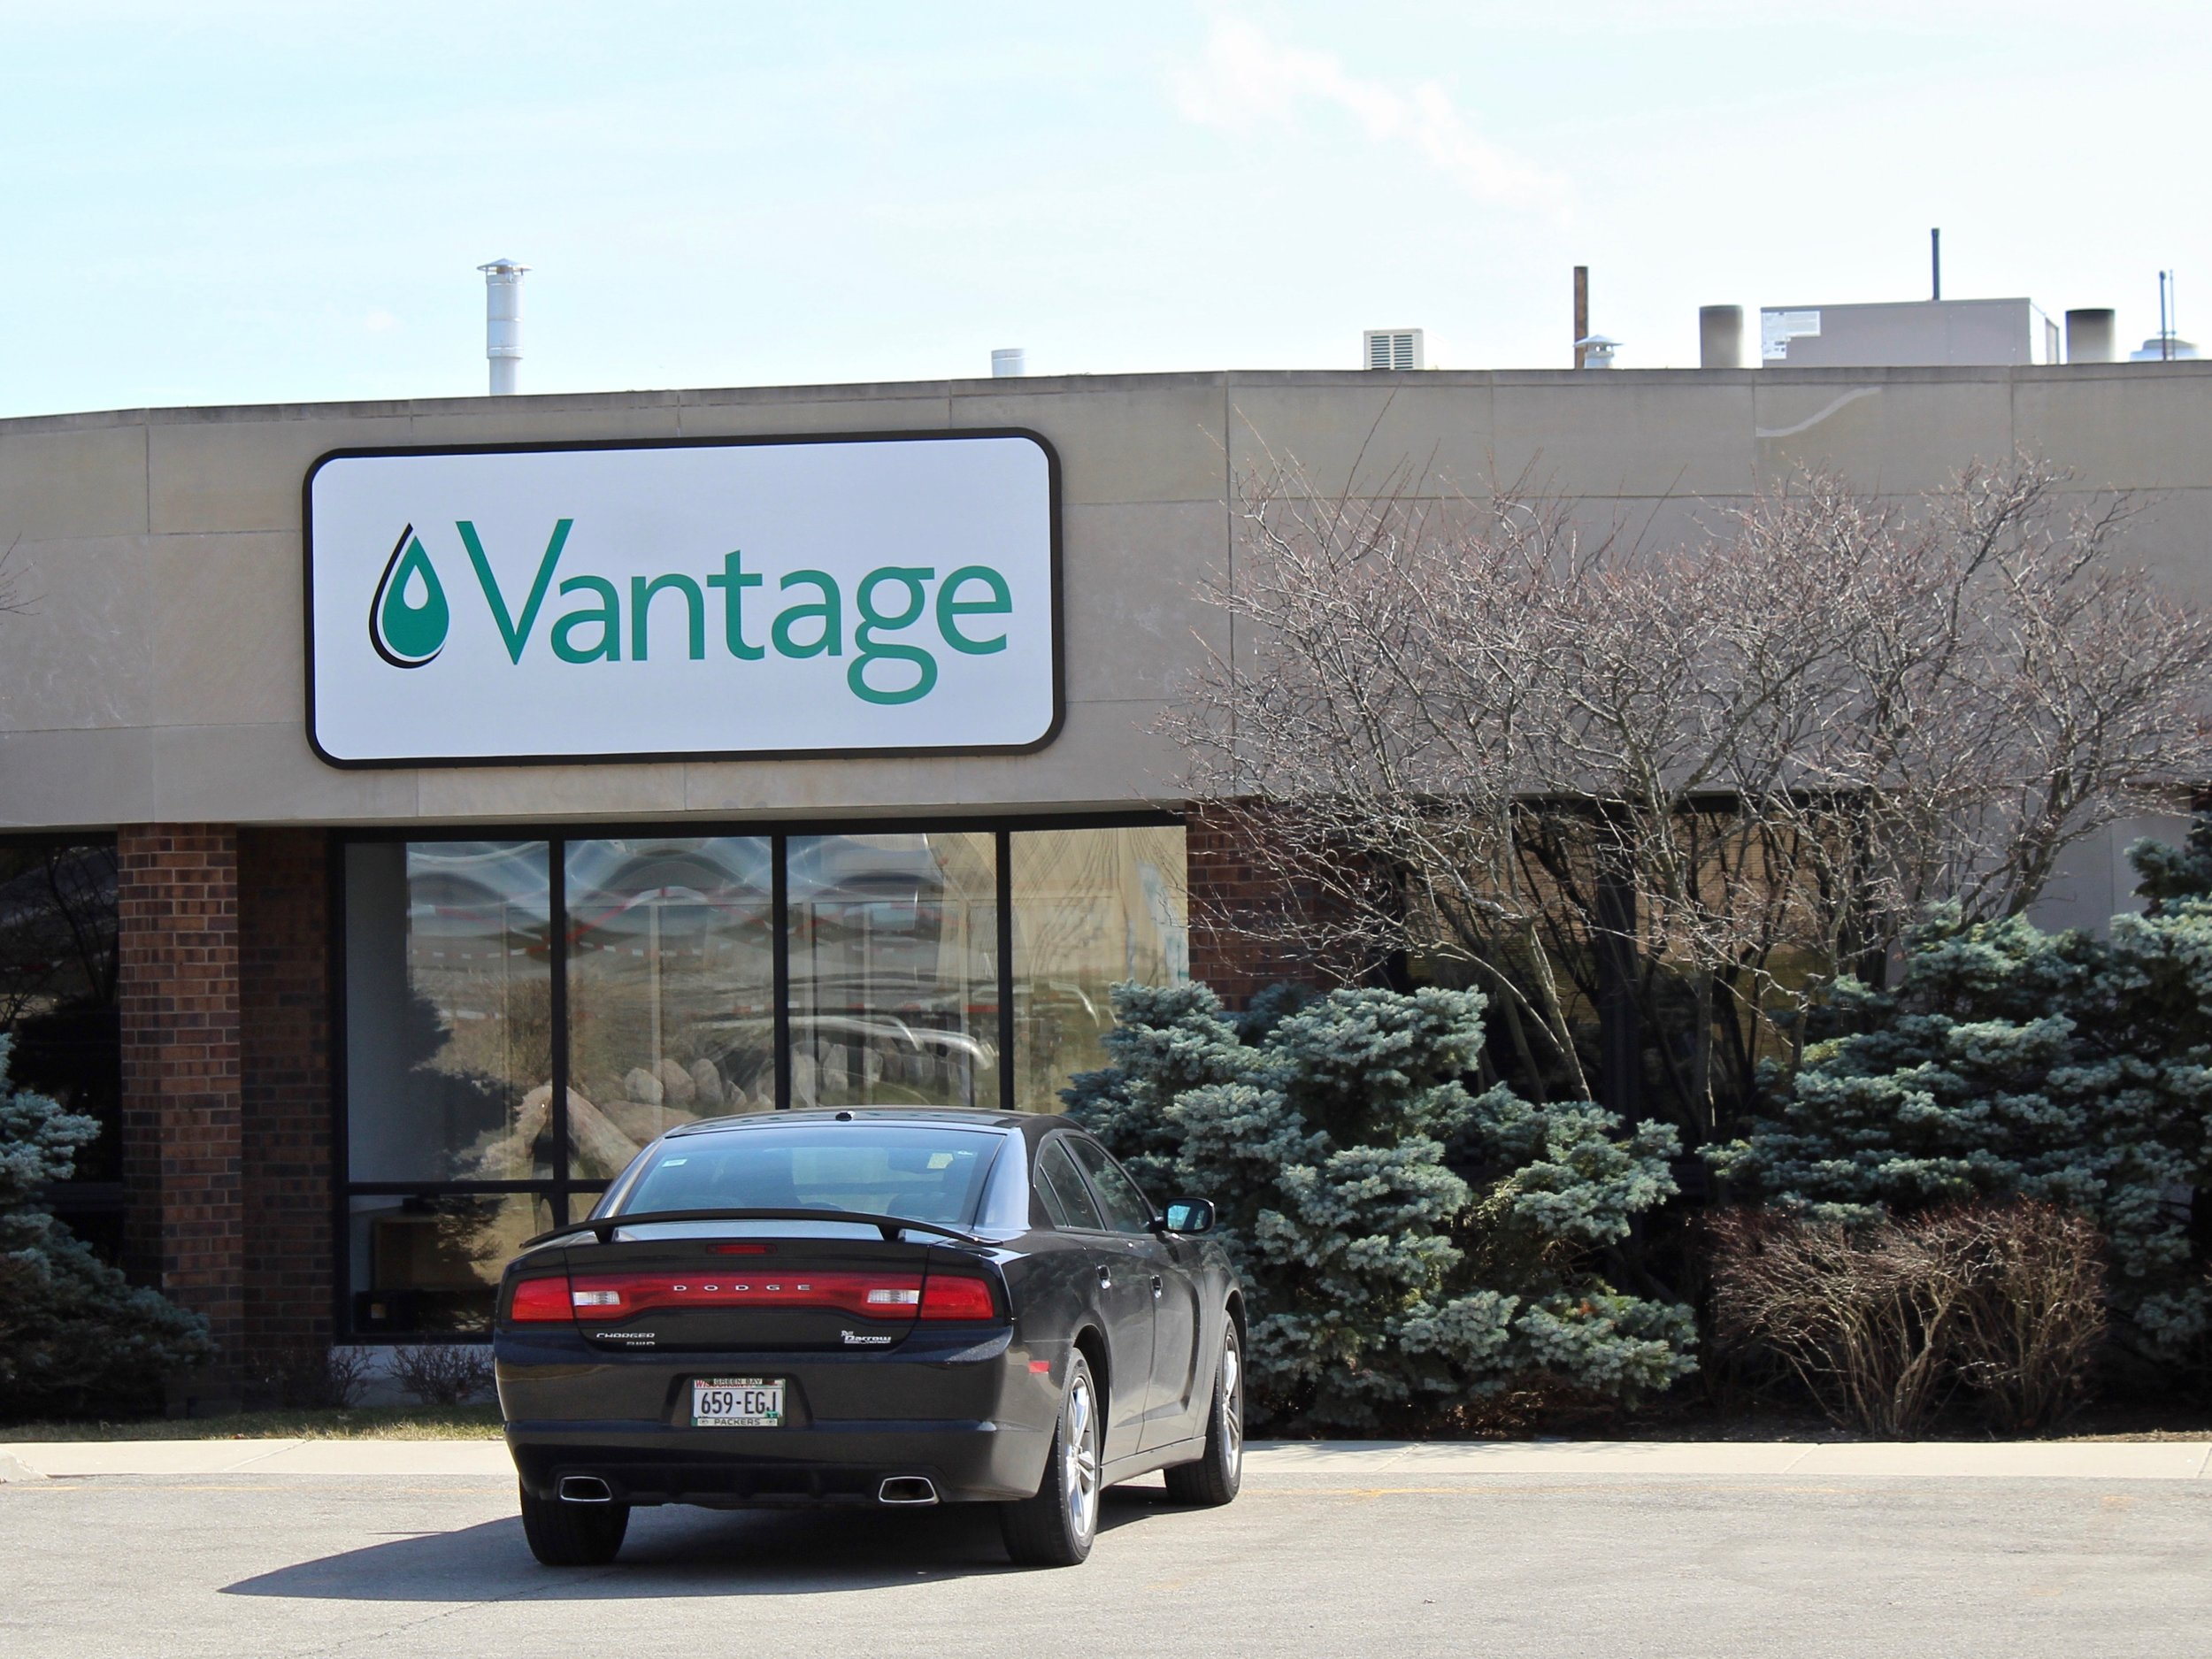 Vantage Specialty Chemicals in Gurnee is involved in a controversy over emissions of ethylene oxide in Lake County. (One Illinois/Ted Cox)